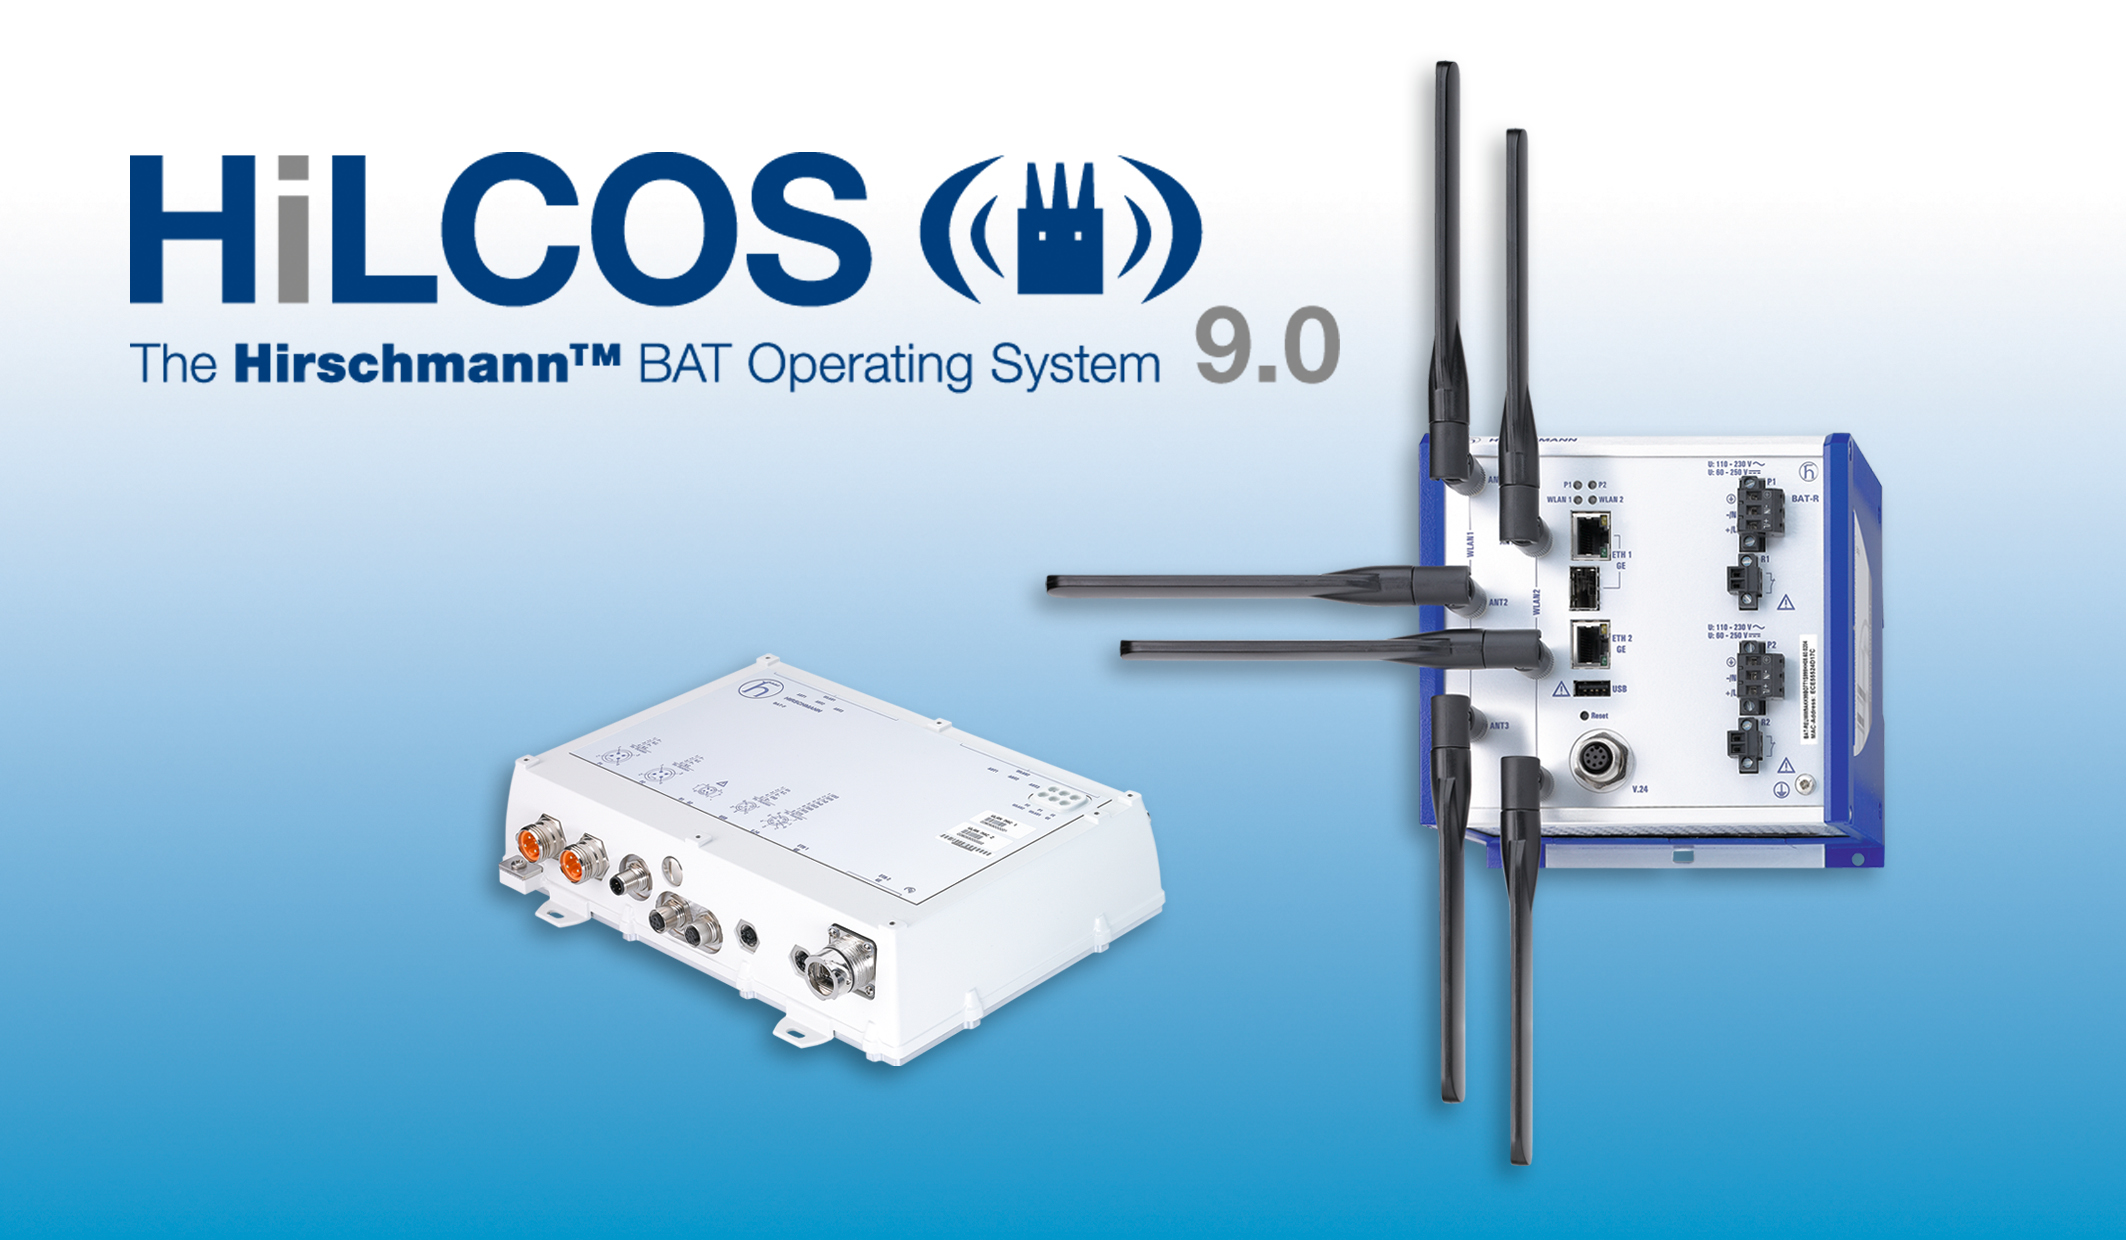 Hirschmann Hilcos 90 Software Ensures Maximum Network Availability Basic Structured Wiring Installation Adjacent To Security Panel And Data Across Wireless Connections